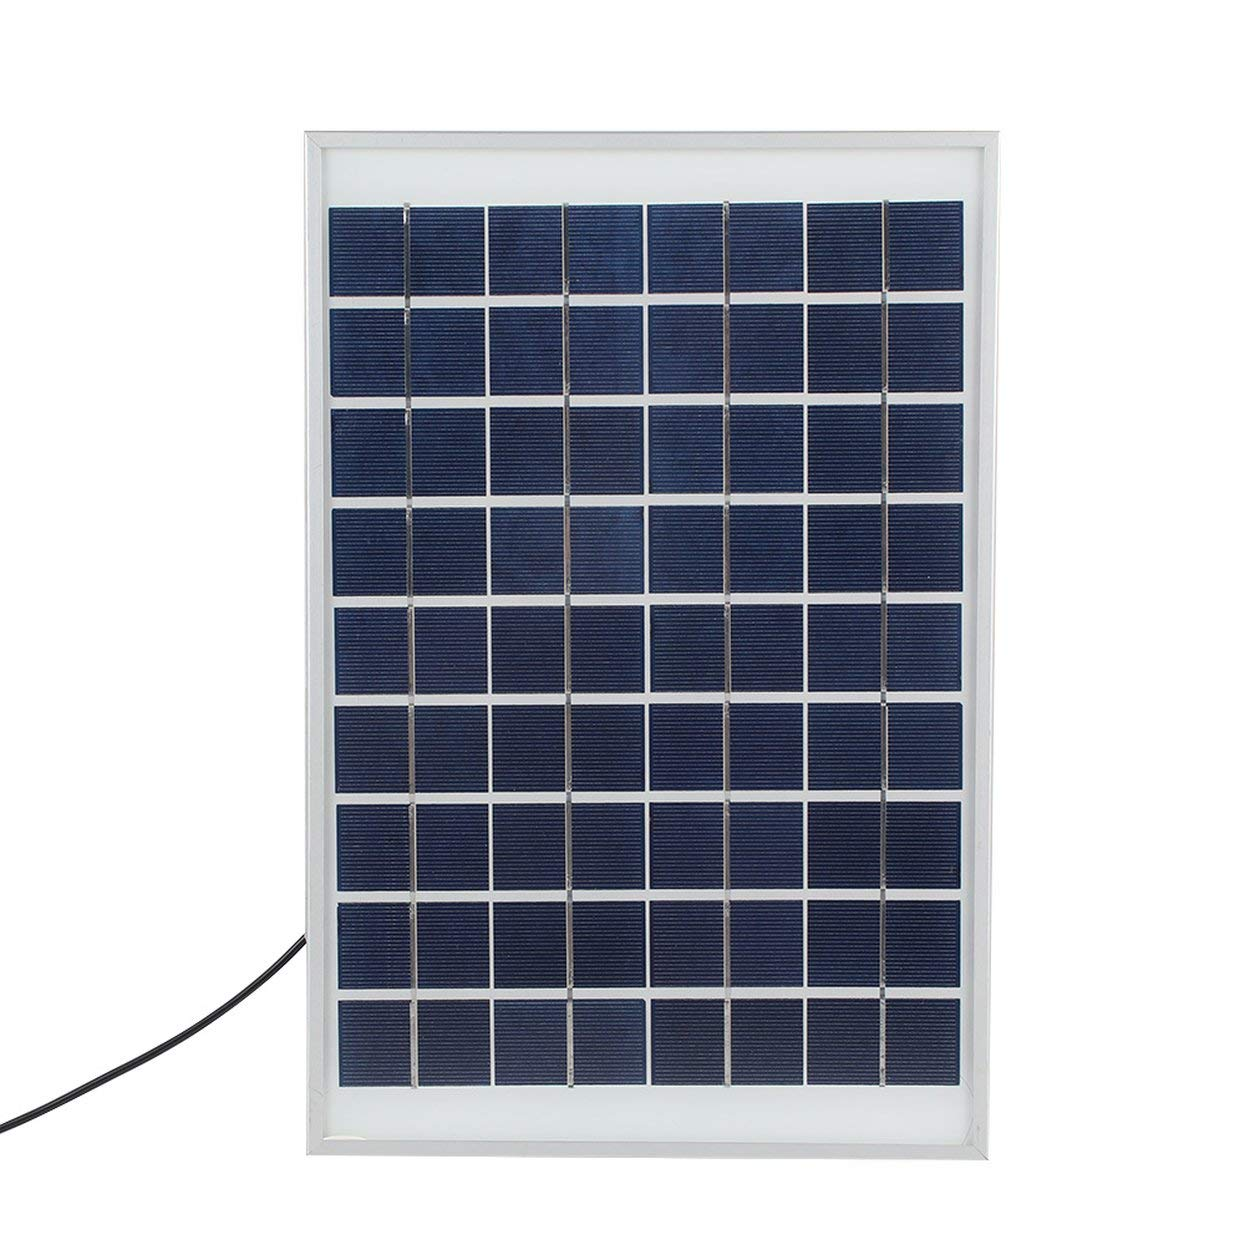 Portable Solar Panel Power Storage Generator LED Light 4 USB Charger Home System by Foreverharbor (Image #7)